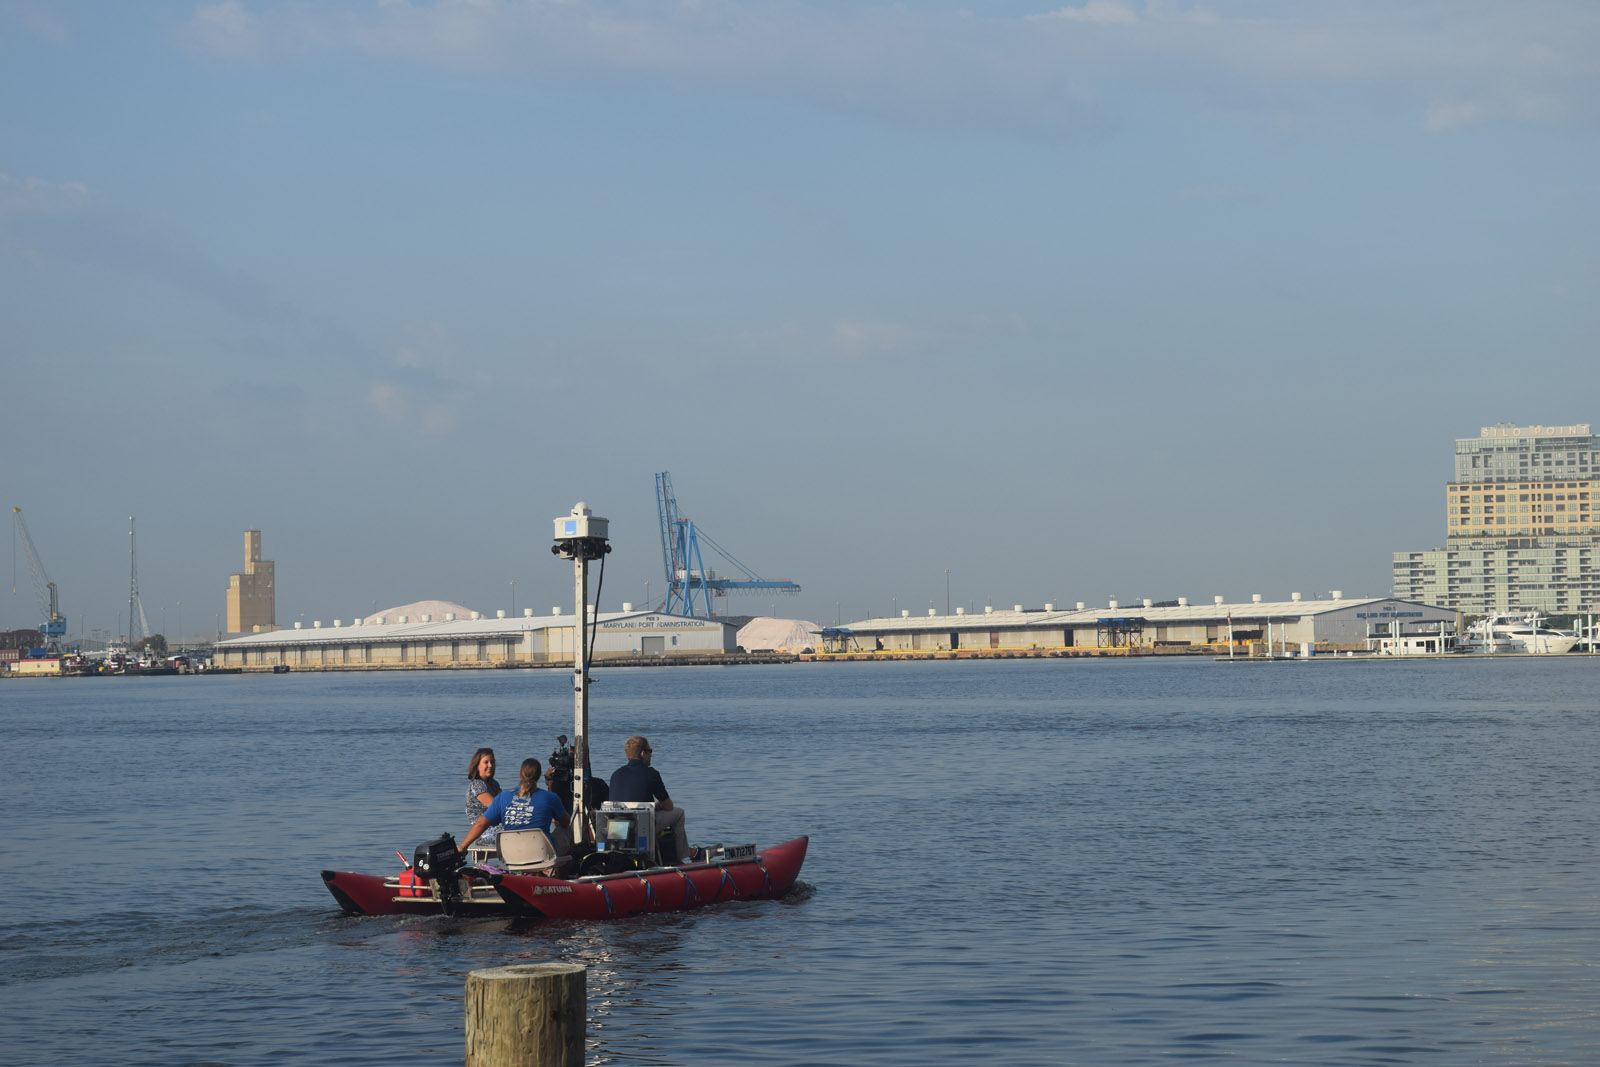 A digital camera takes high resolution images of Baltimore's Inner Harbor as part of a project to create a virtual tour of the waterway for the Chesapeake Conservancy. The conservancy has created similar tours for other waterways that feed into the bay. (Courtesy Chesapeake Conservancy)